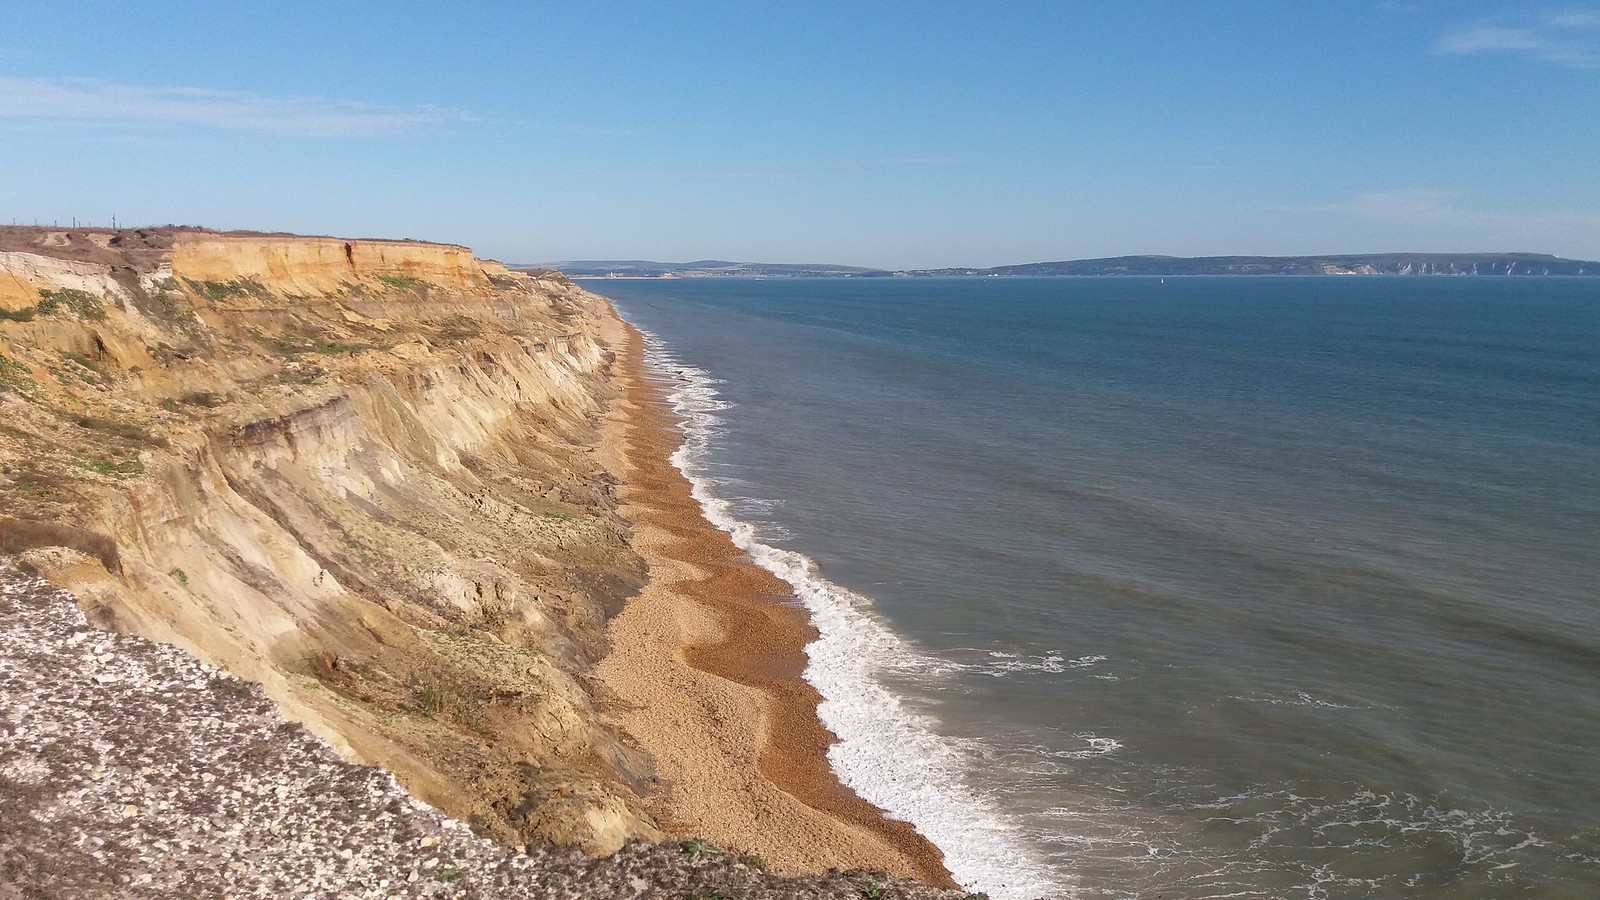 20160907_163333 Hordle Cliff at high tide